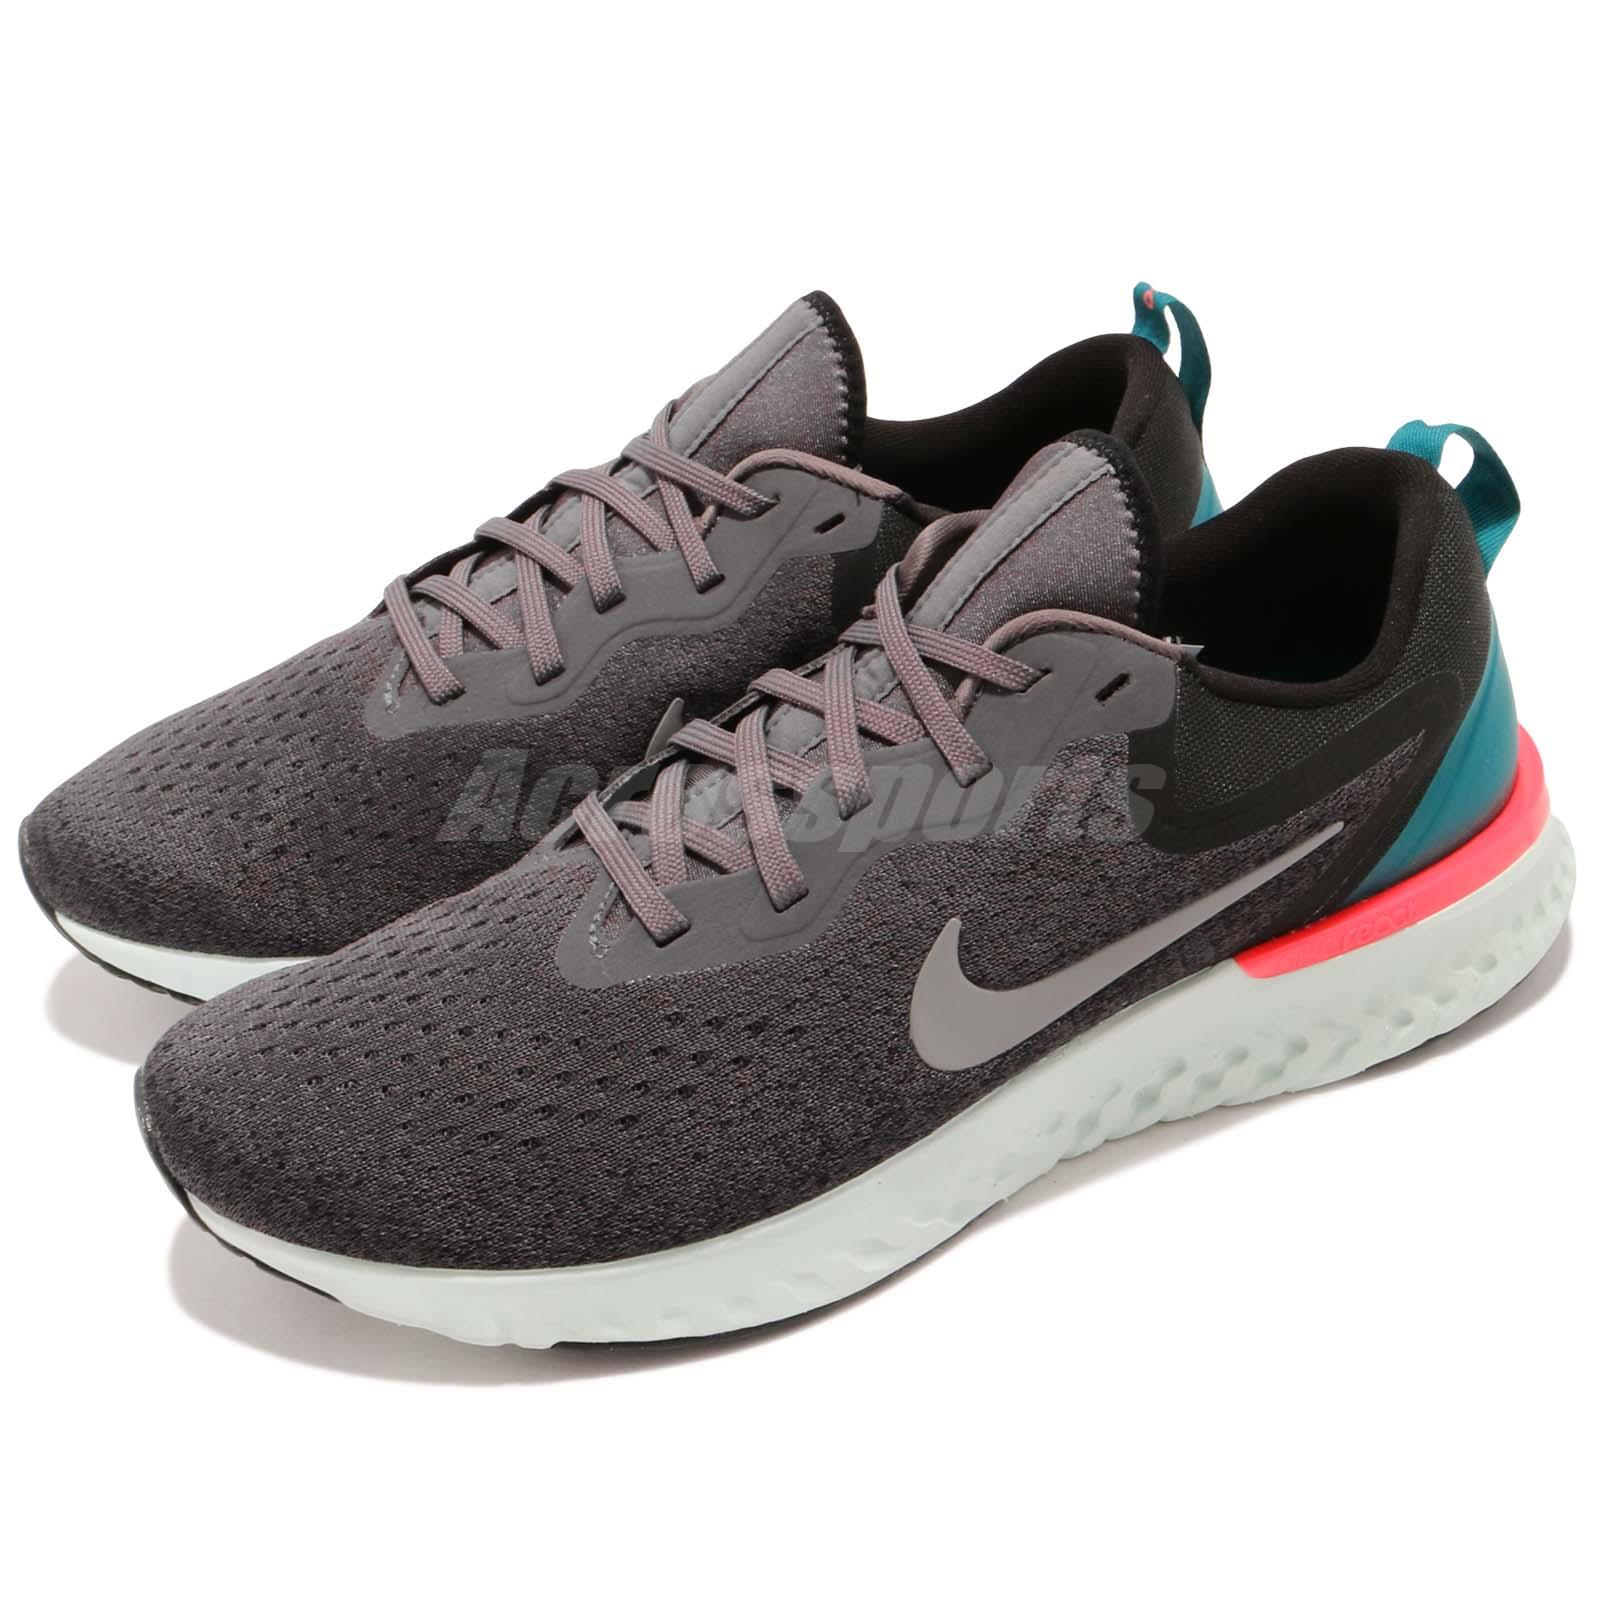 19cdfbe64d5b2 Details about Nike Odyssey React Thunder Grey Green Pink Men Running Shoes  Sneakers AO9819-007